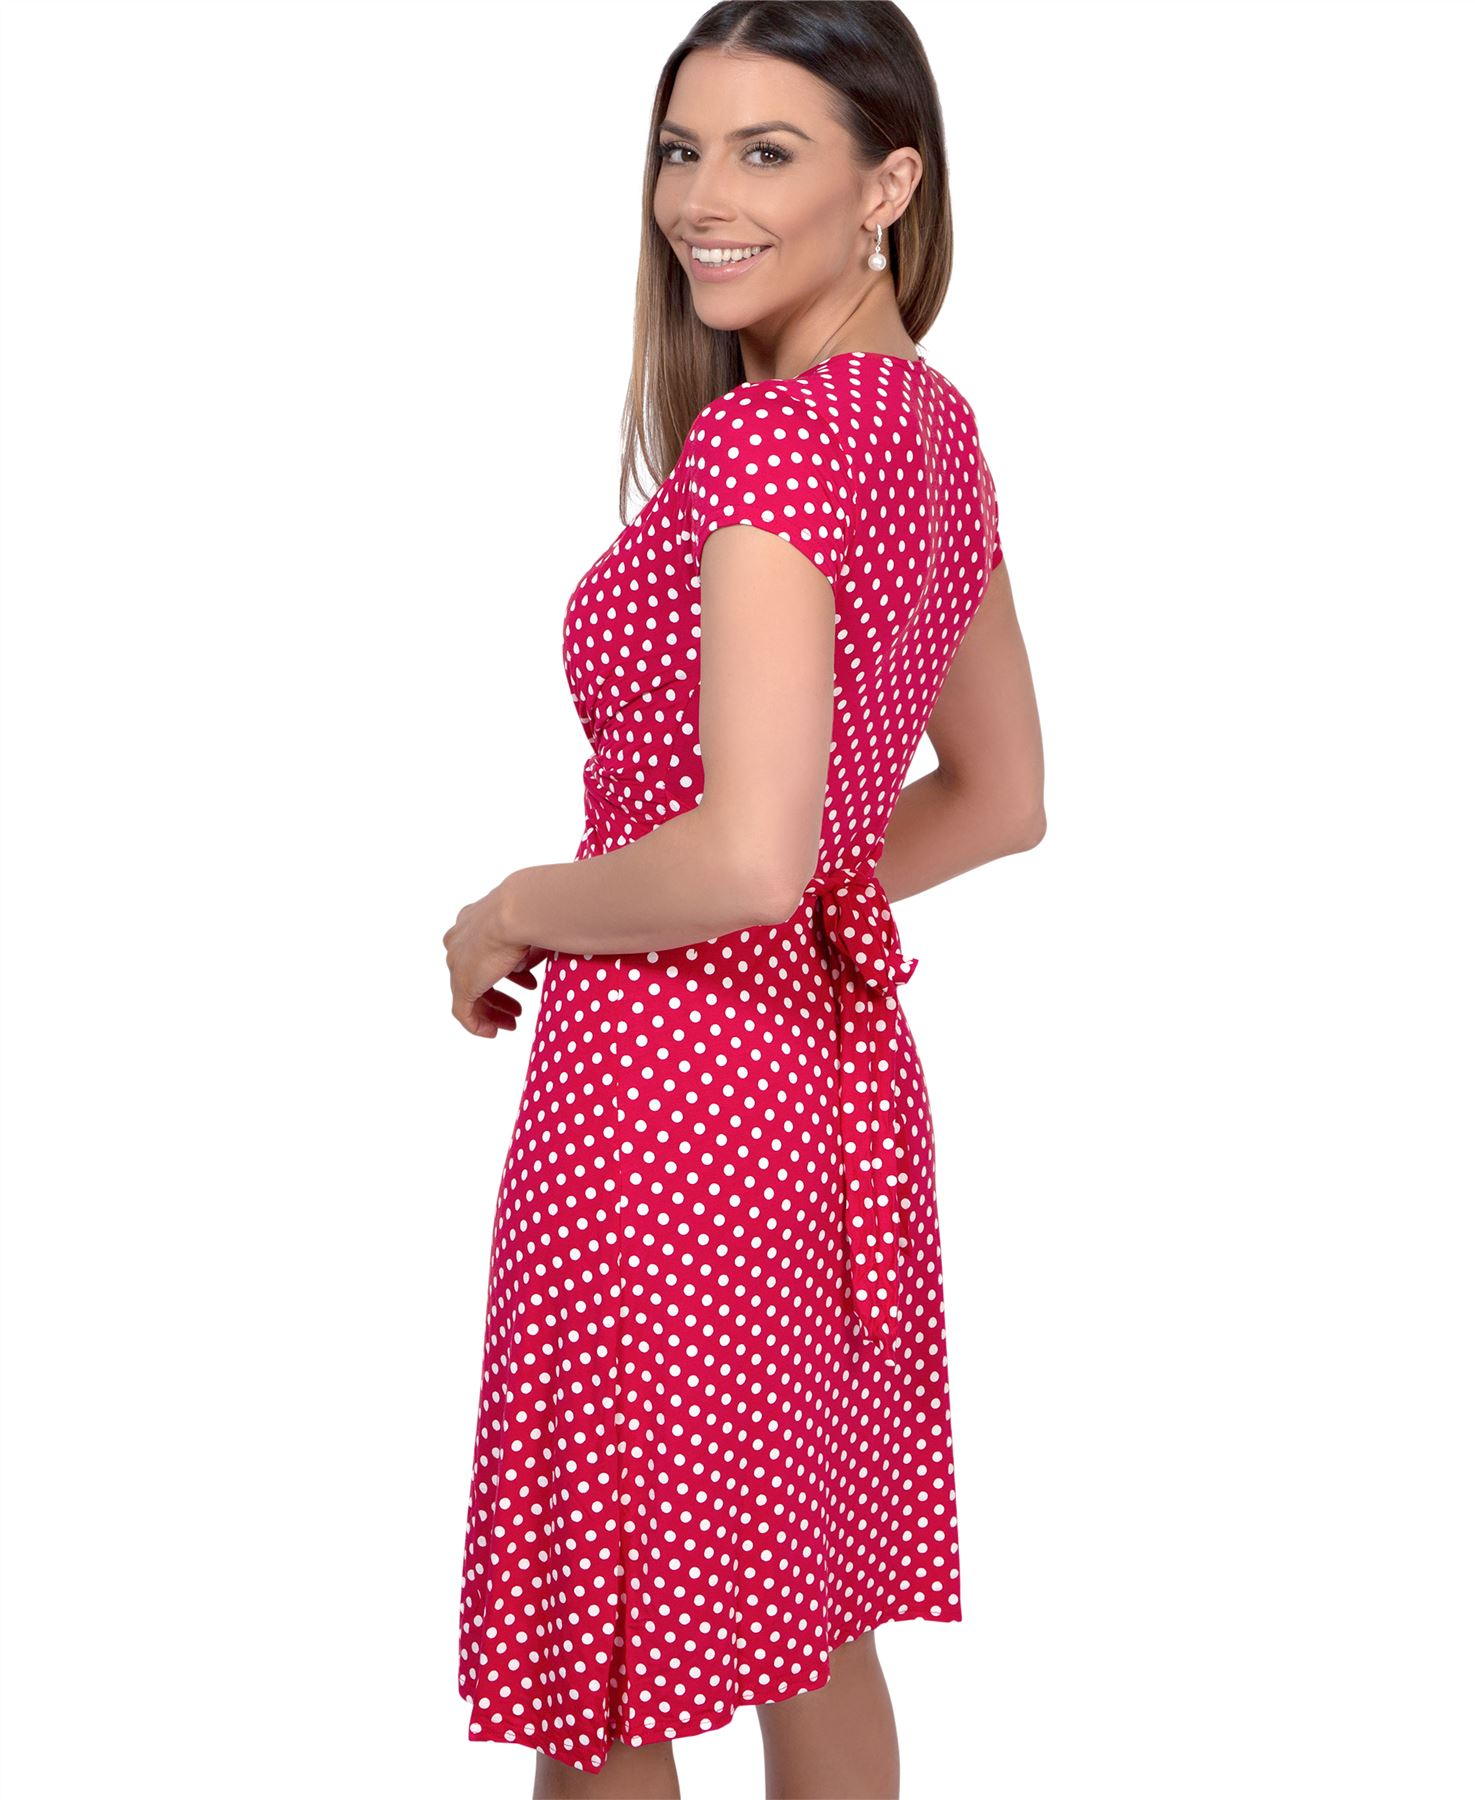 Womens-Polka-Dot-Retro-Dress-Pleated-Skirt-Wrap-Mini-V-Neck-Top-Swing-Party thumbnail 31